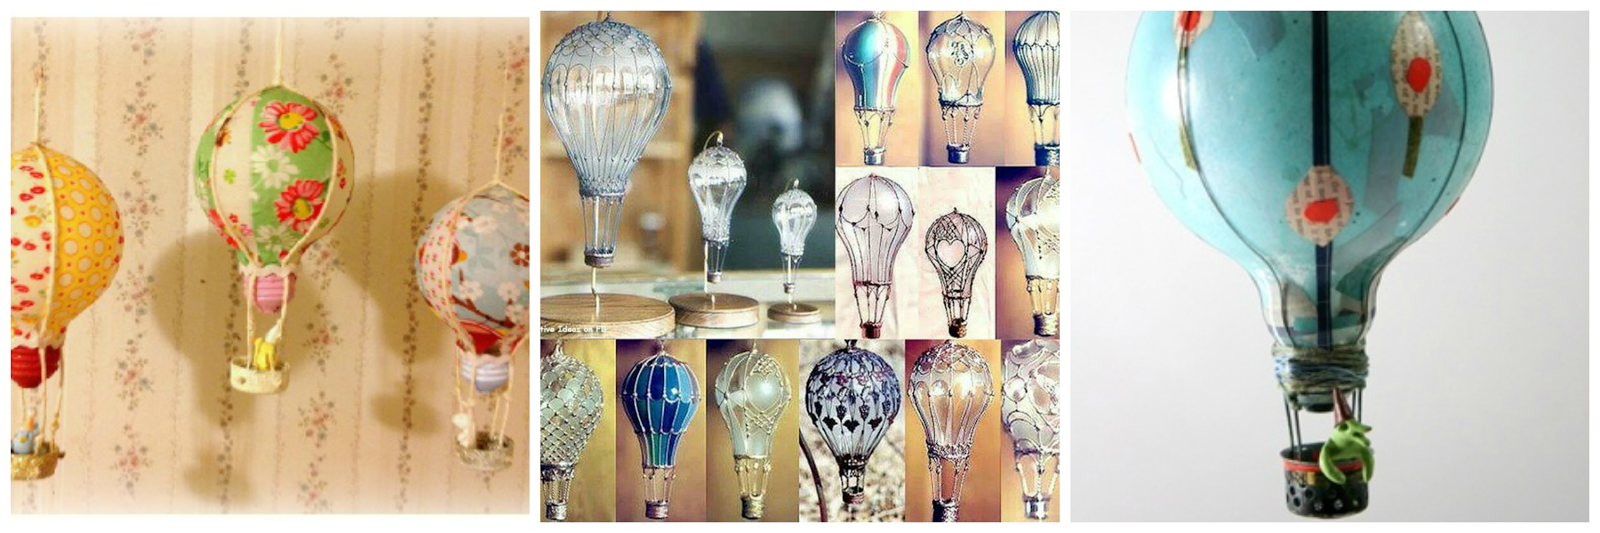 BALLOON LIGHT BULB DIY GLOBOS CON BOMBILLAS